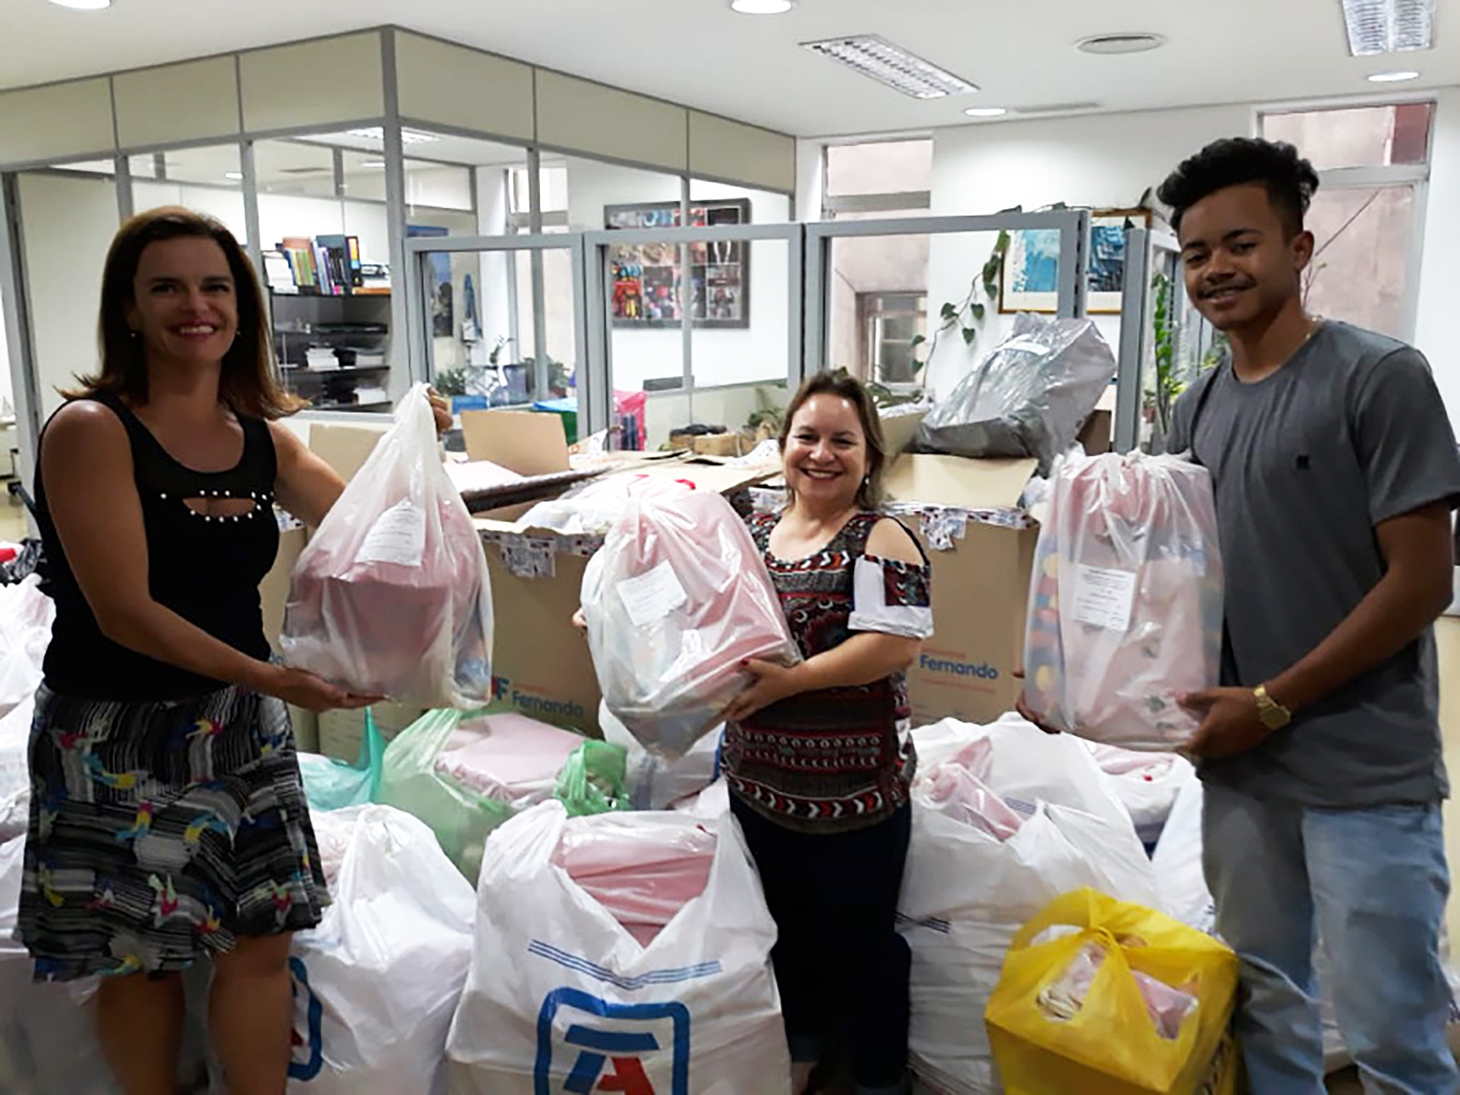 Colleagues in Brazil with Christmas bags for Grupo Amar